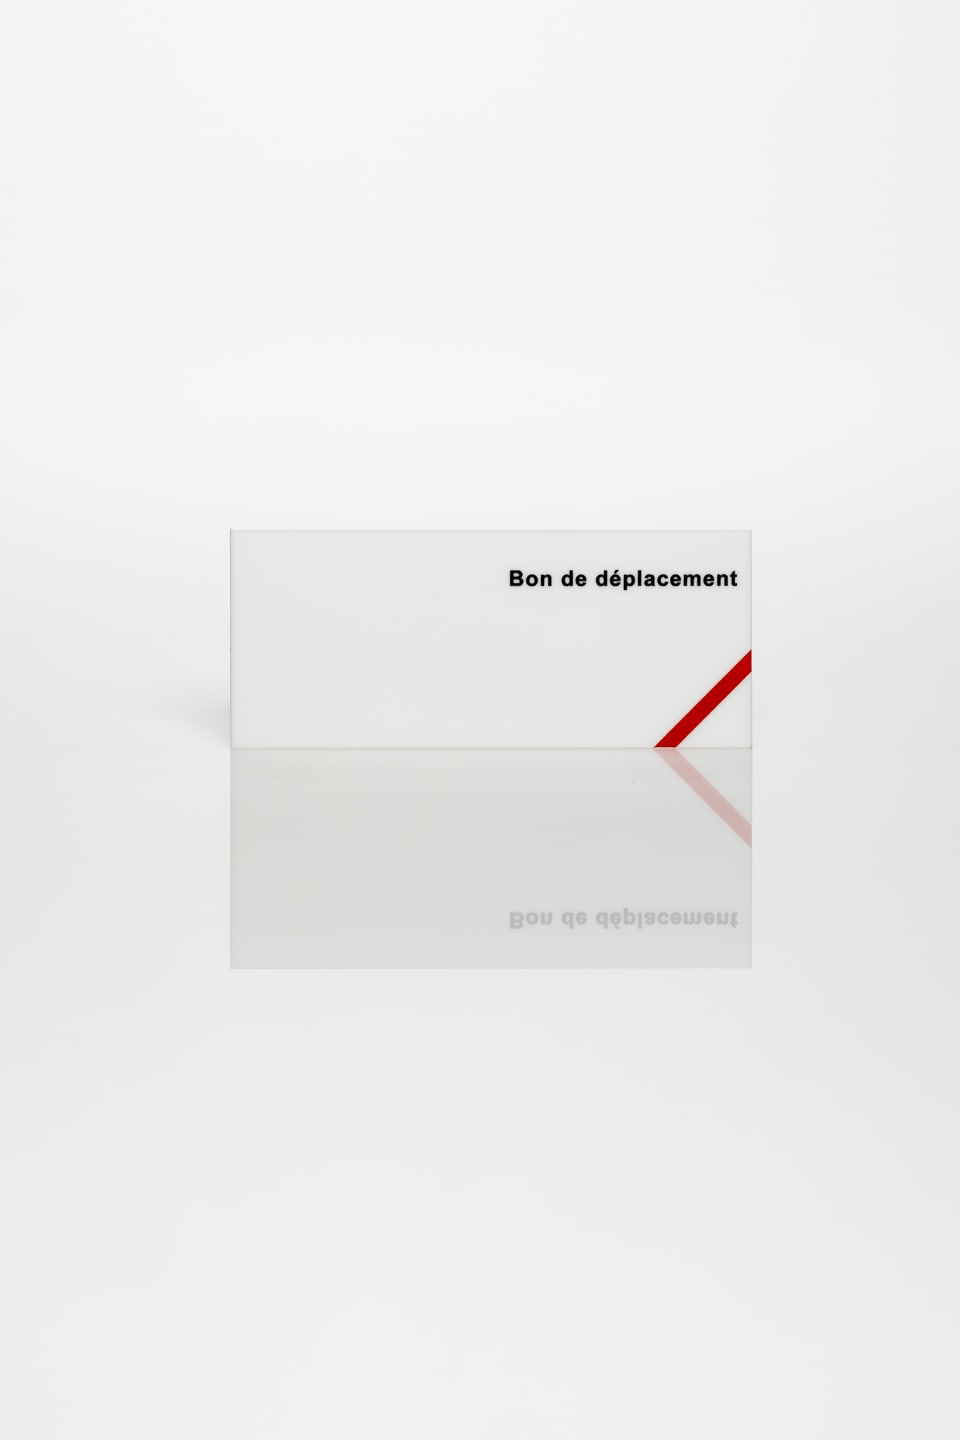 Anna Blessmann and Peter Saville Bon de déplacement, 2013 Opal 069 perspex with black type engraved font and pantone warm red C stripe. Accompanied by a signed certificate. 12 x 5 x 0.5 cm Edition of 20